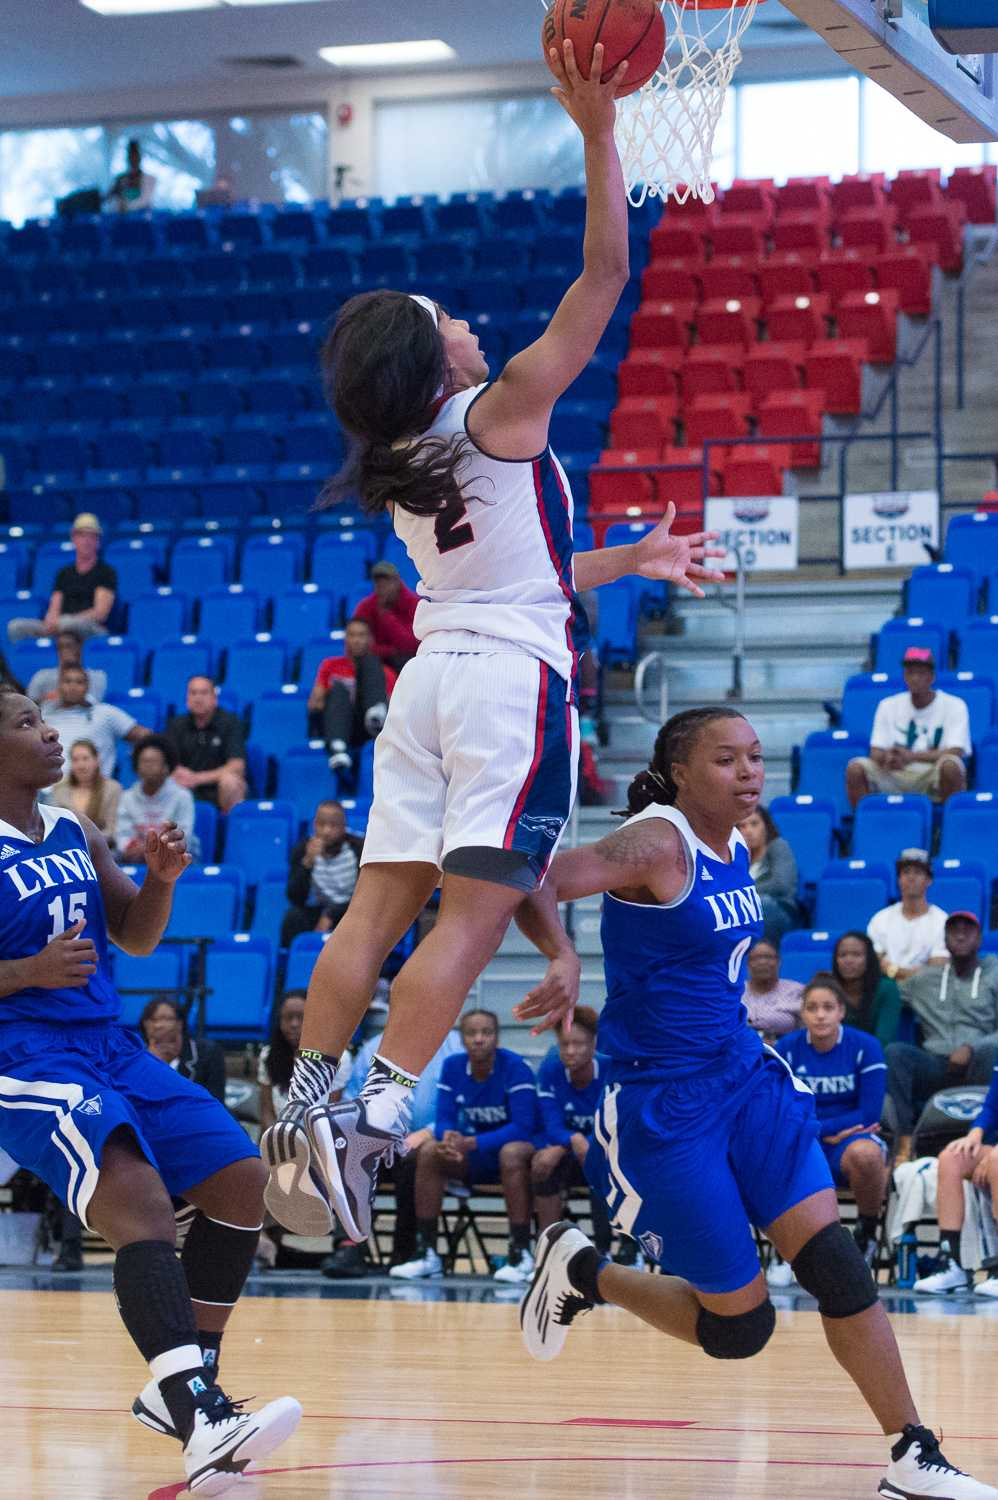 FAU guard Shaneese Bailey attempts a layup in the first half. Bailey scored 22 total points on the night.